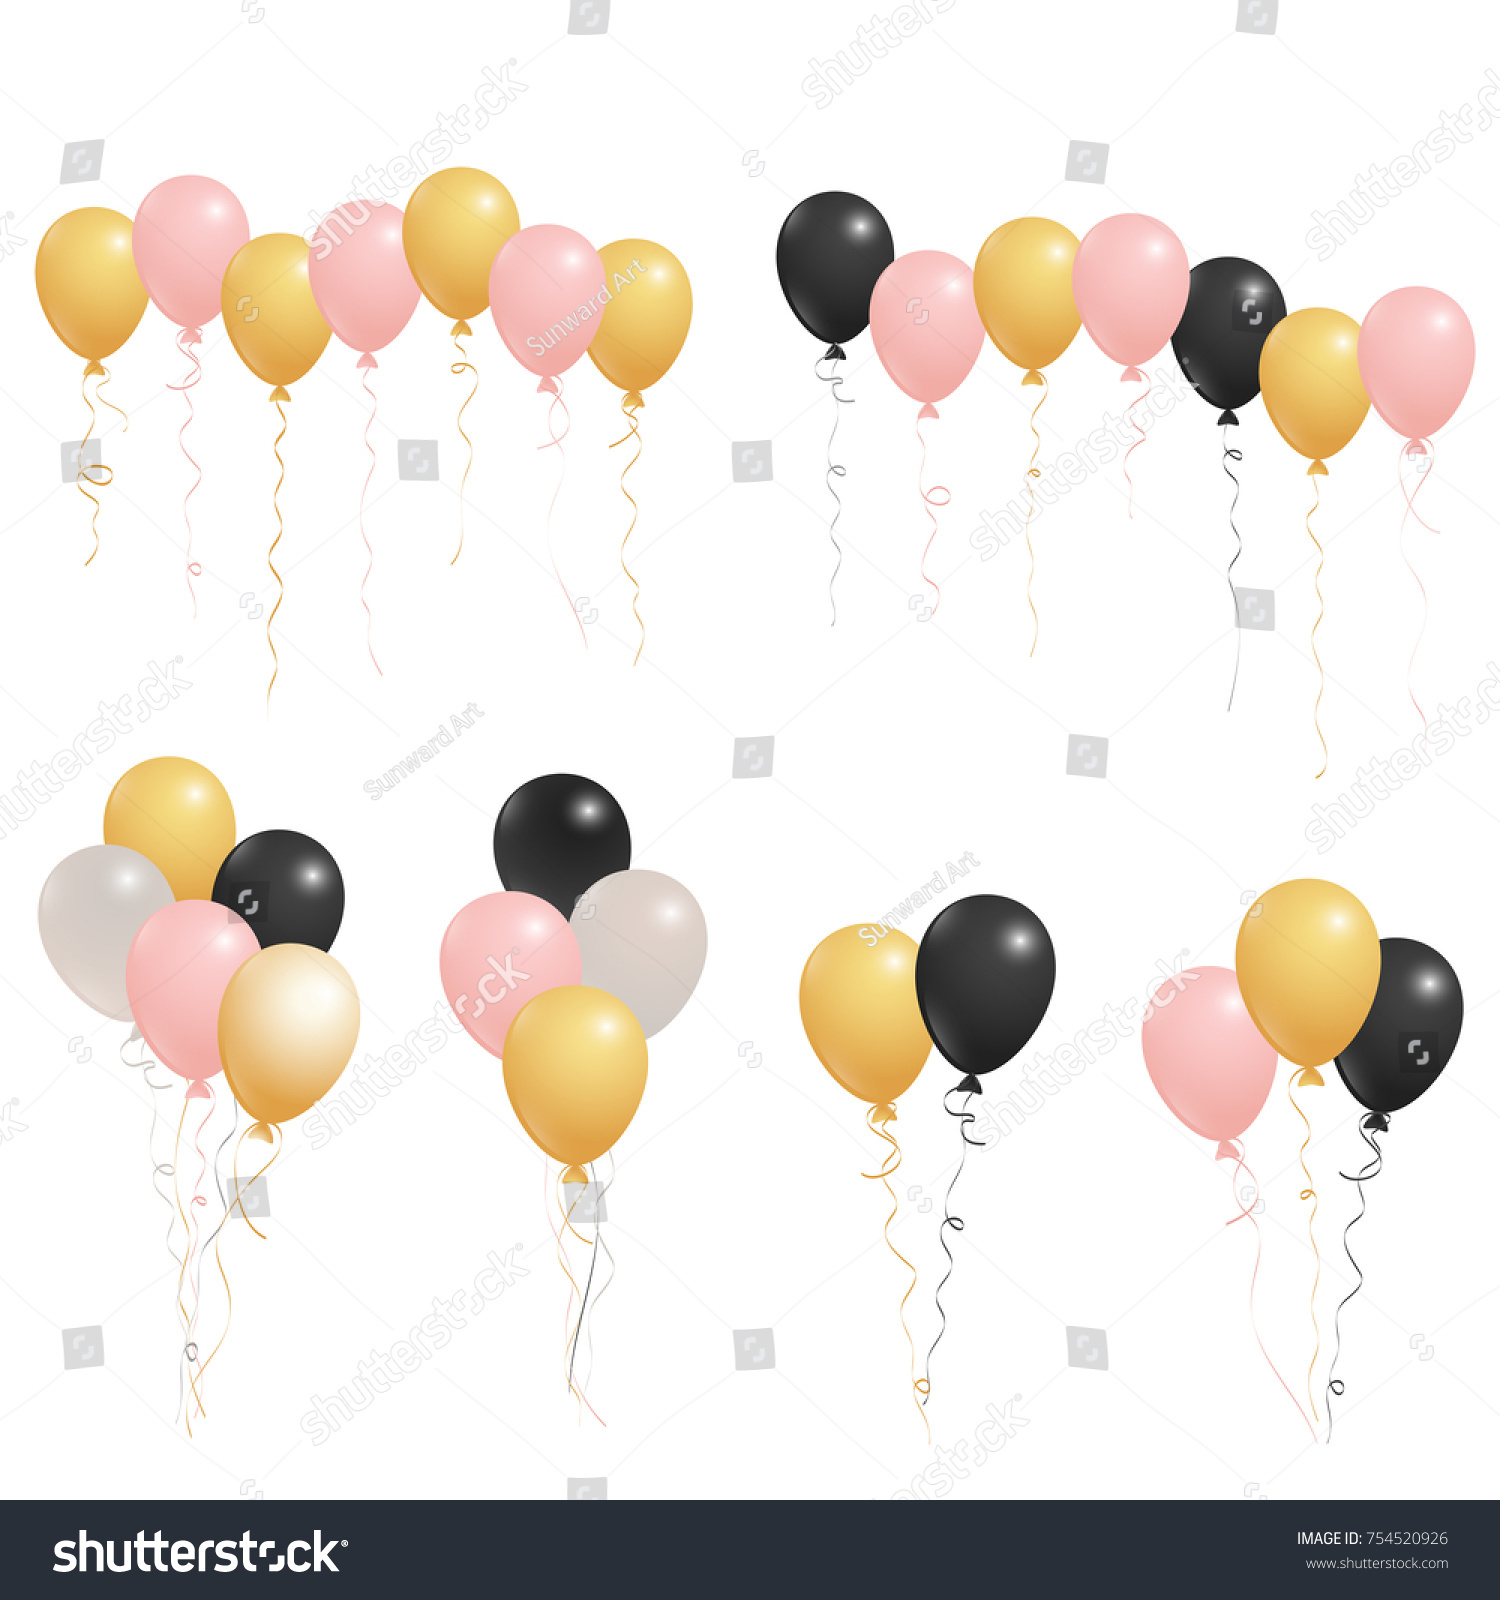 Rose Gold Pink Silver And Black Flying Balloons Isolated Vector Illustration Birthday Party Decoration